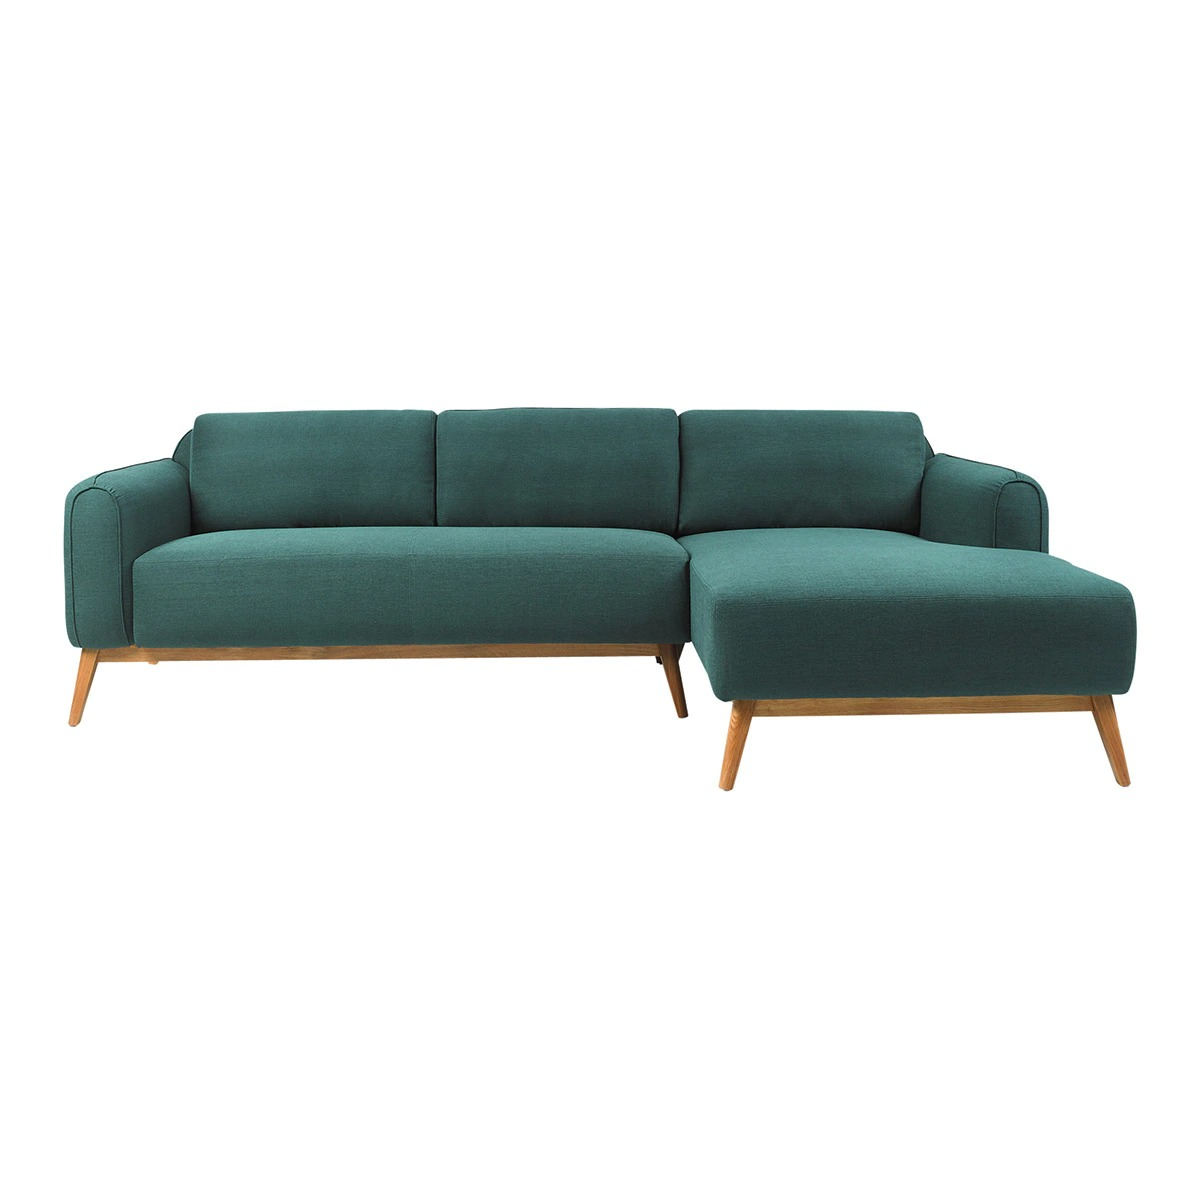 Sofa with right chaise longue Green Room